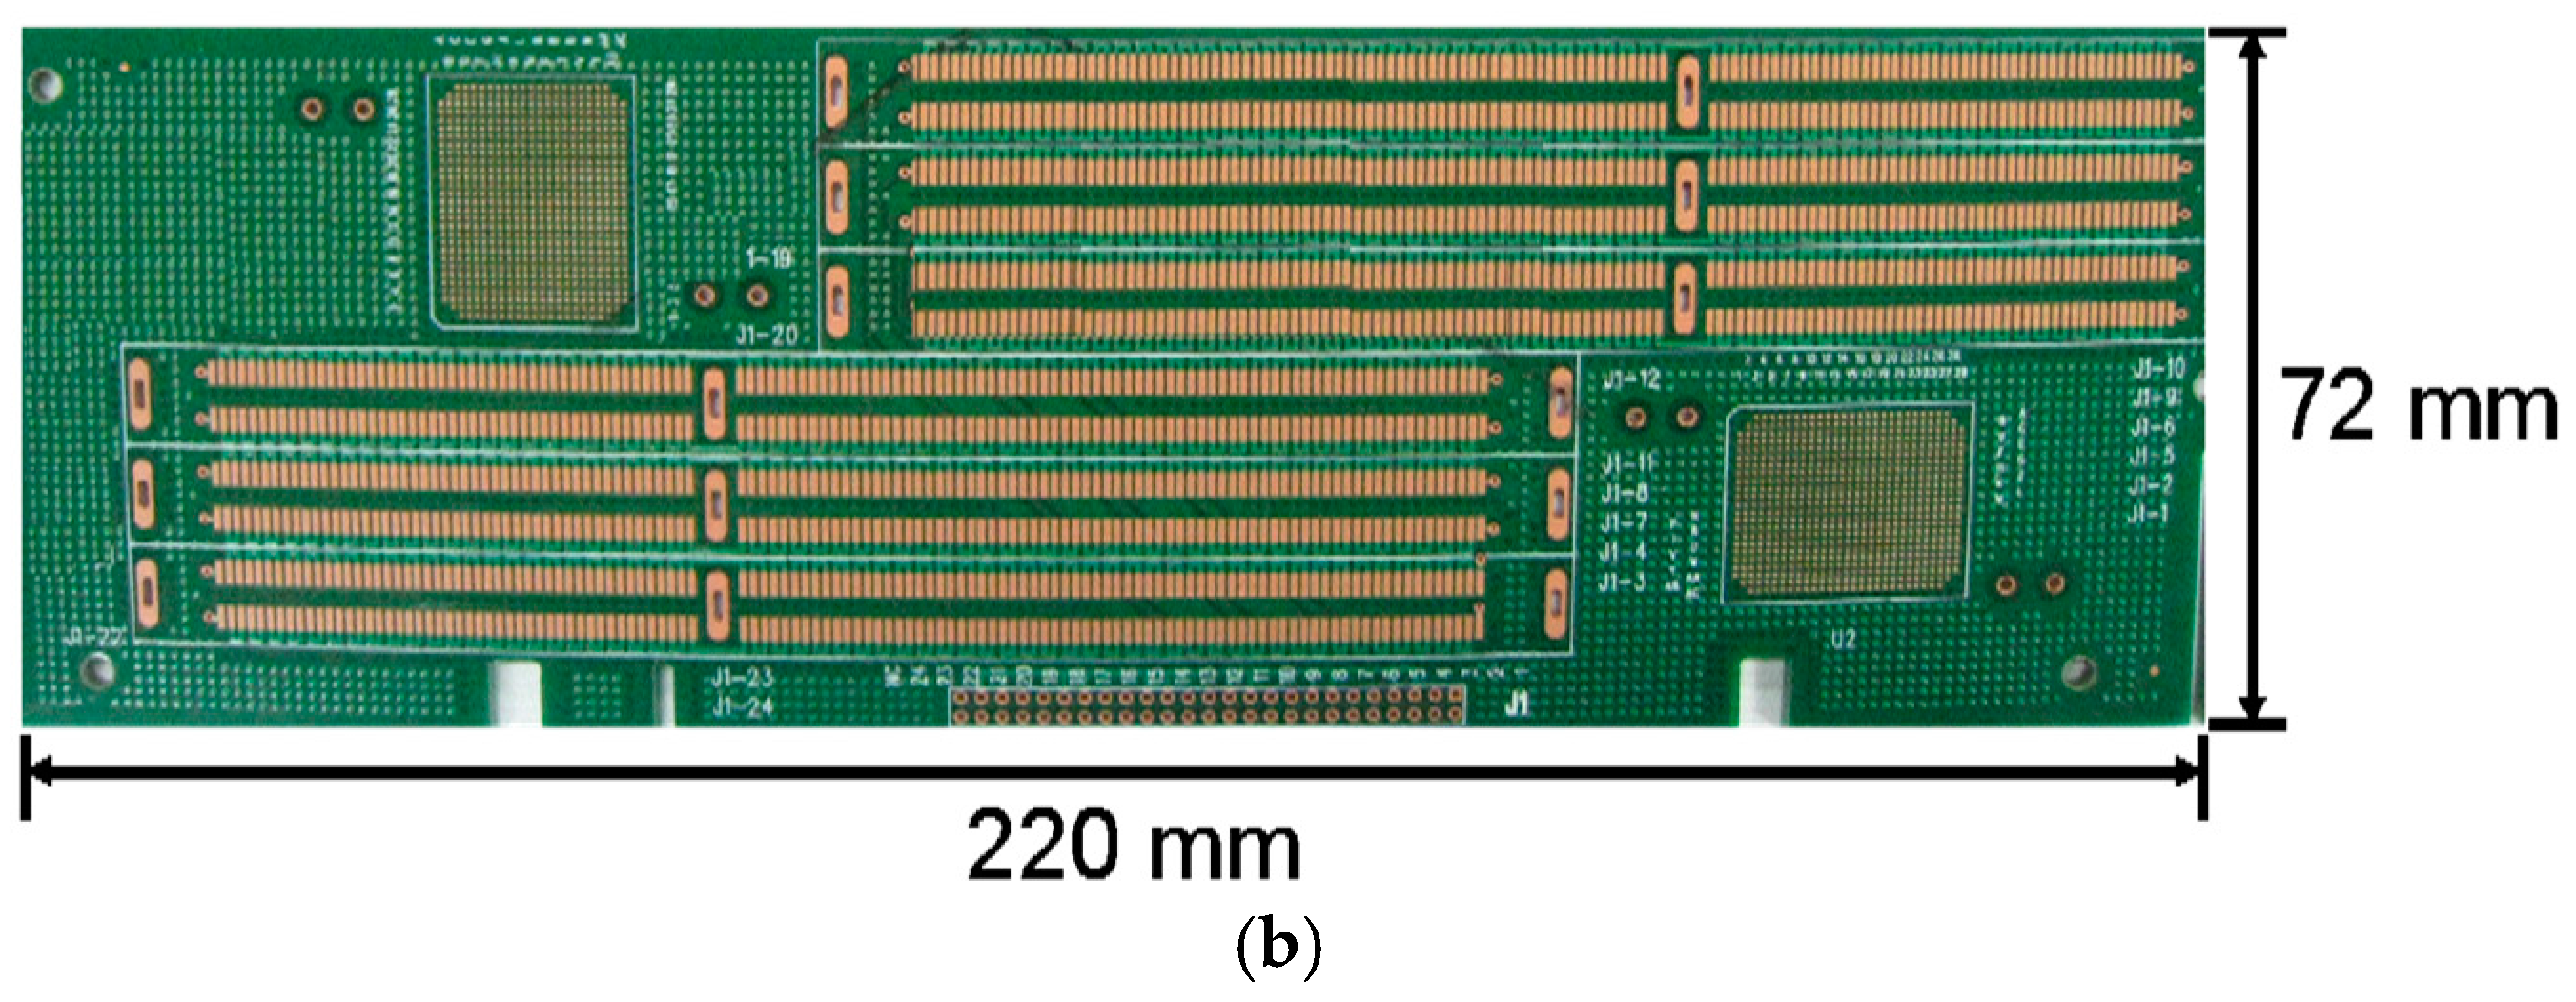 Applied Sciences Free Full Text Measurements Of Thermally Picture A Circuit Board No